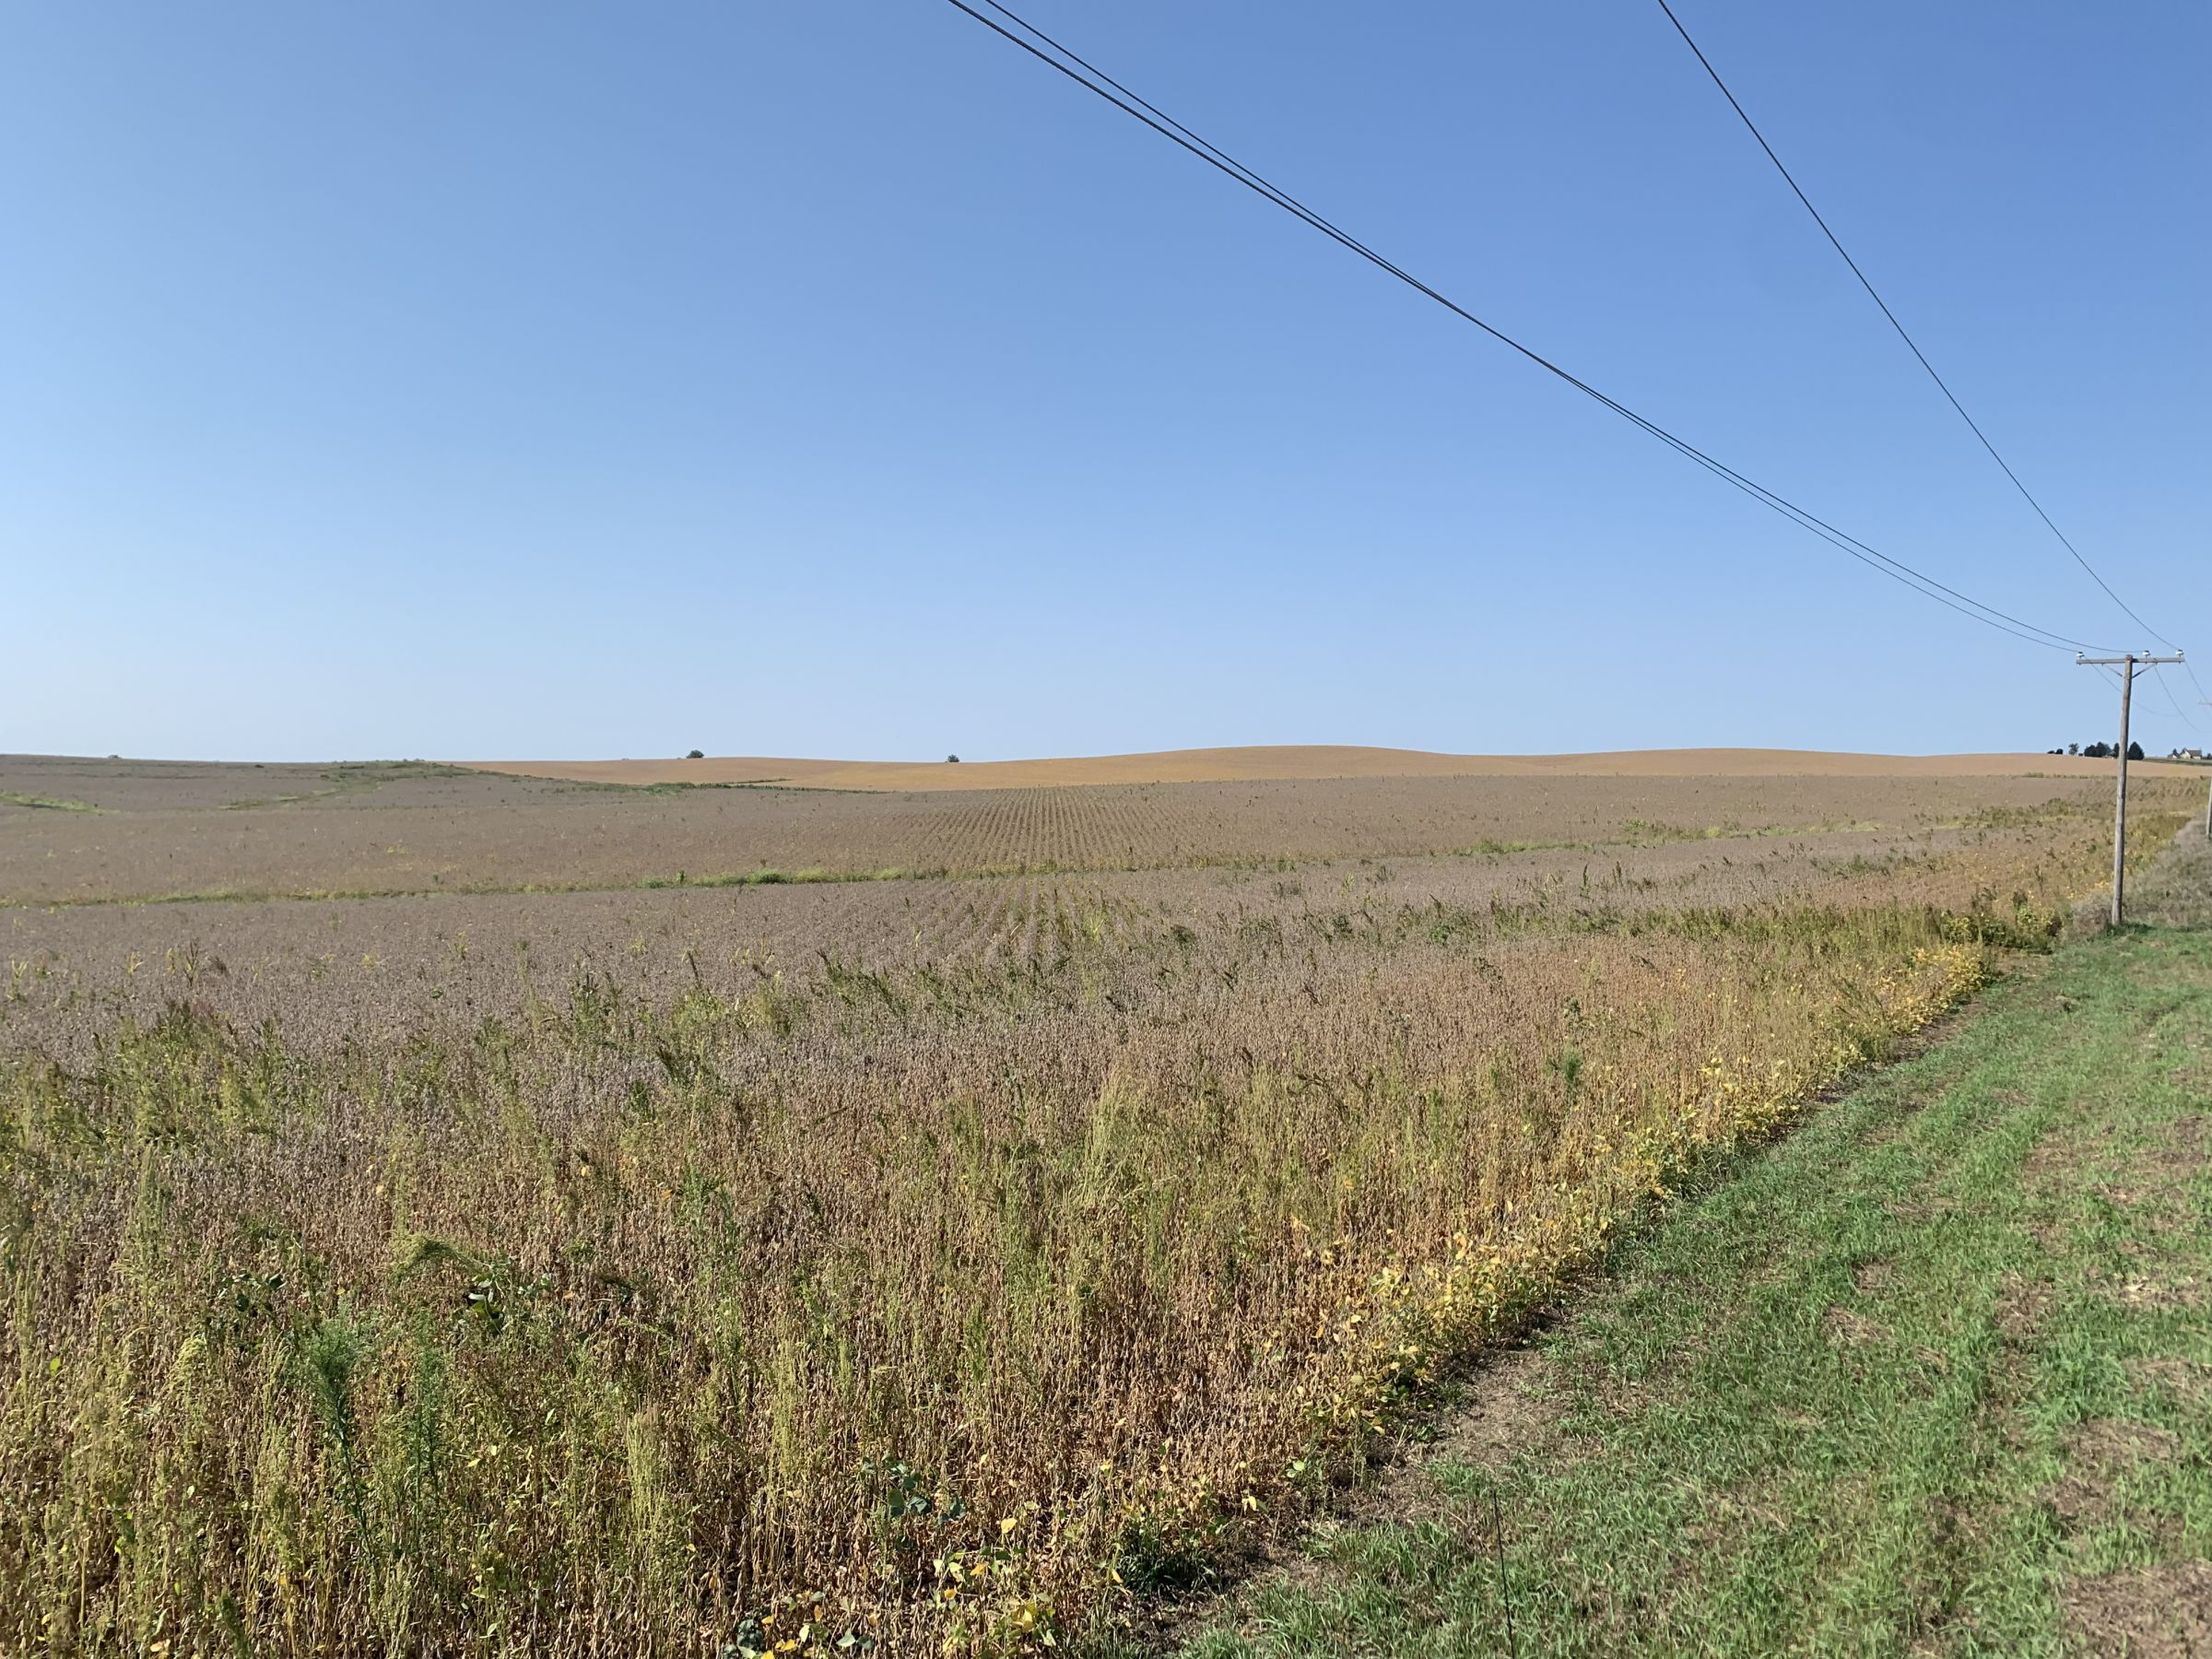 auctions-jackson-county-iowa-79-acres-listing-number-15751-3-2021-09-21-152722.jpg